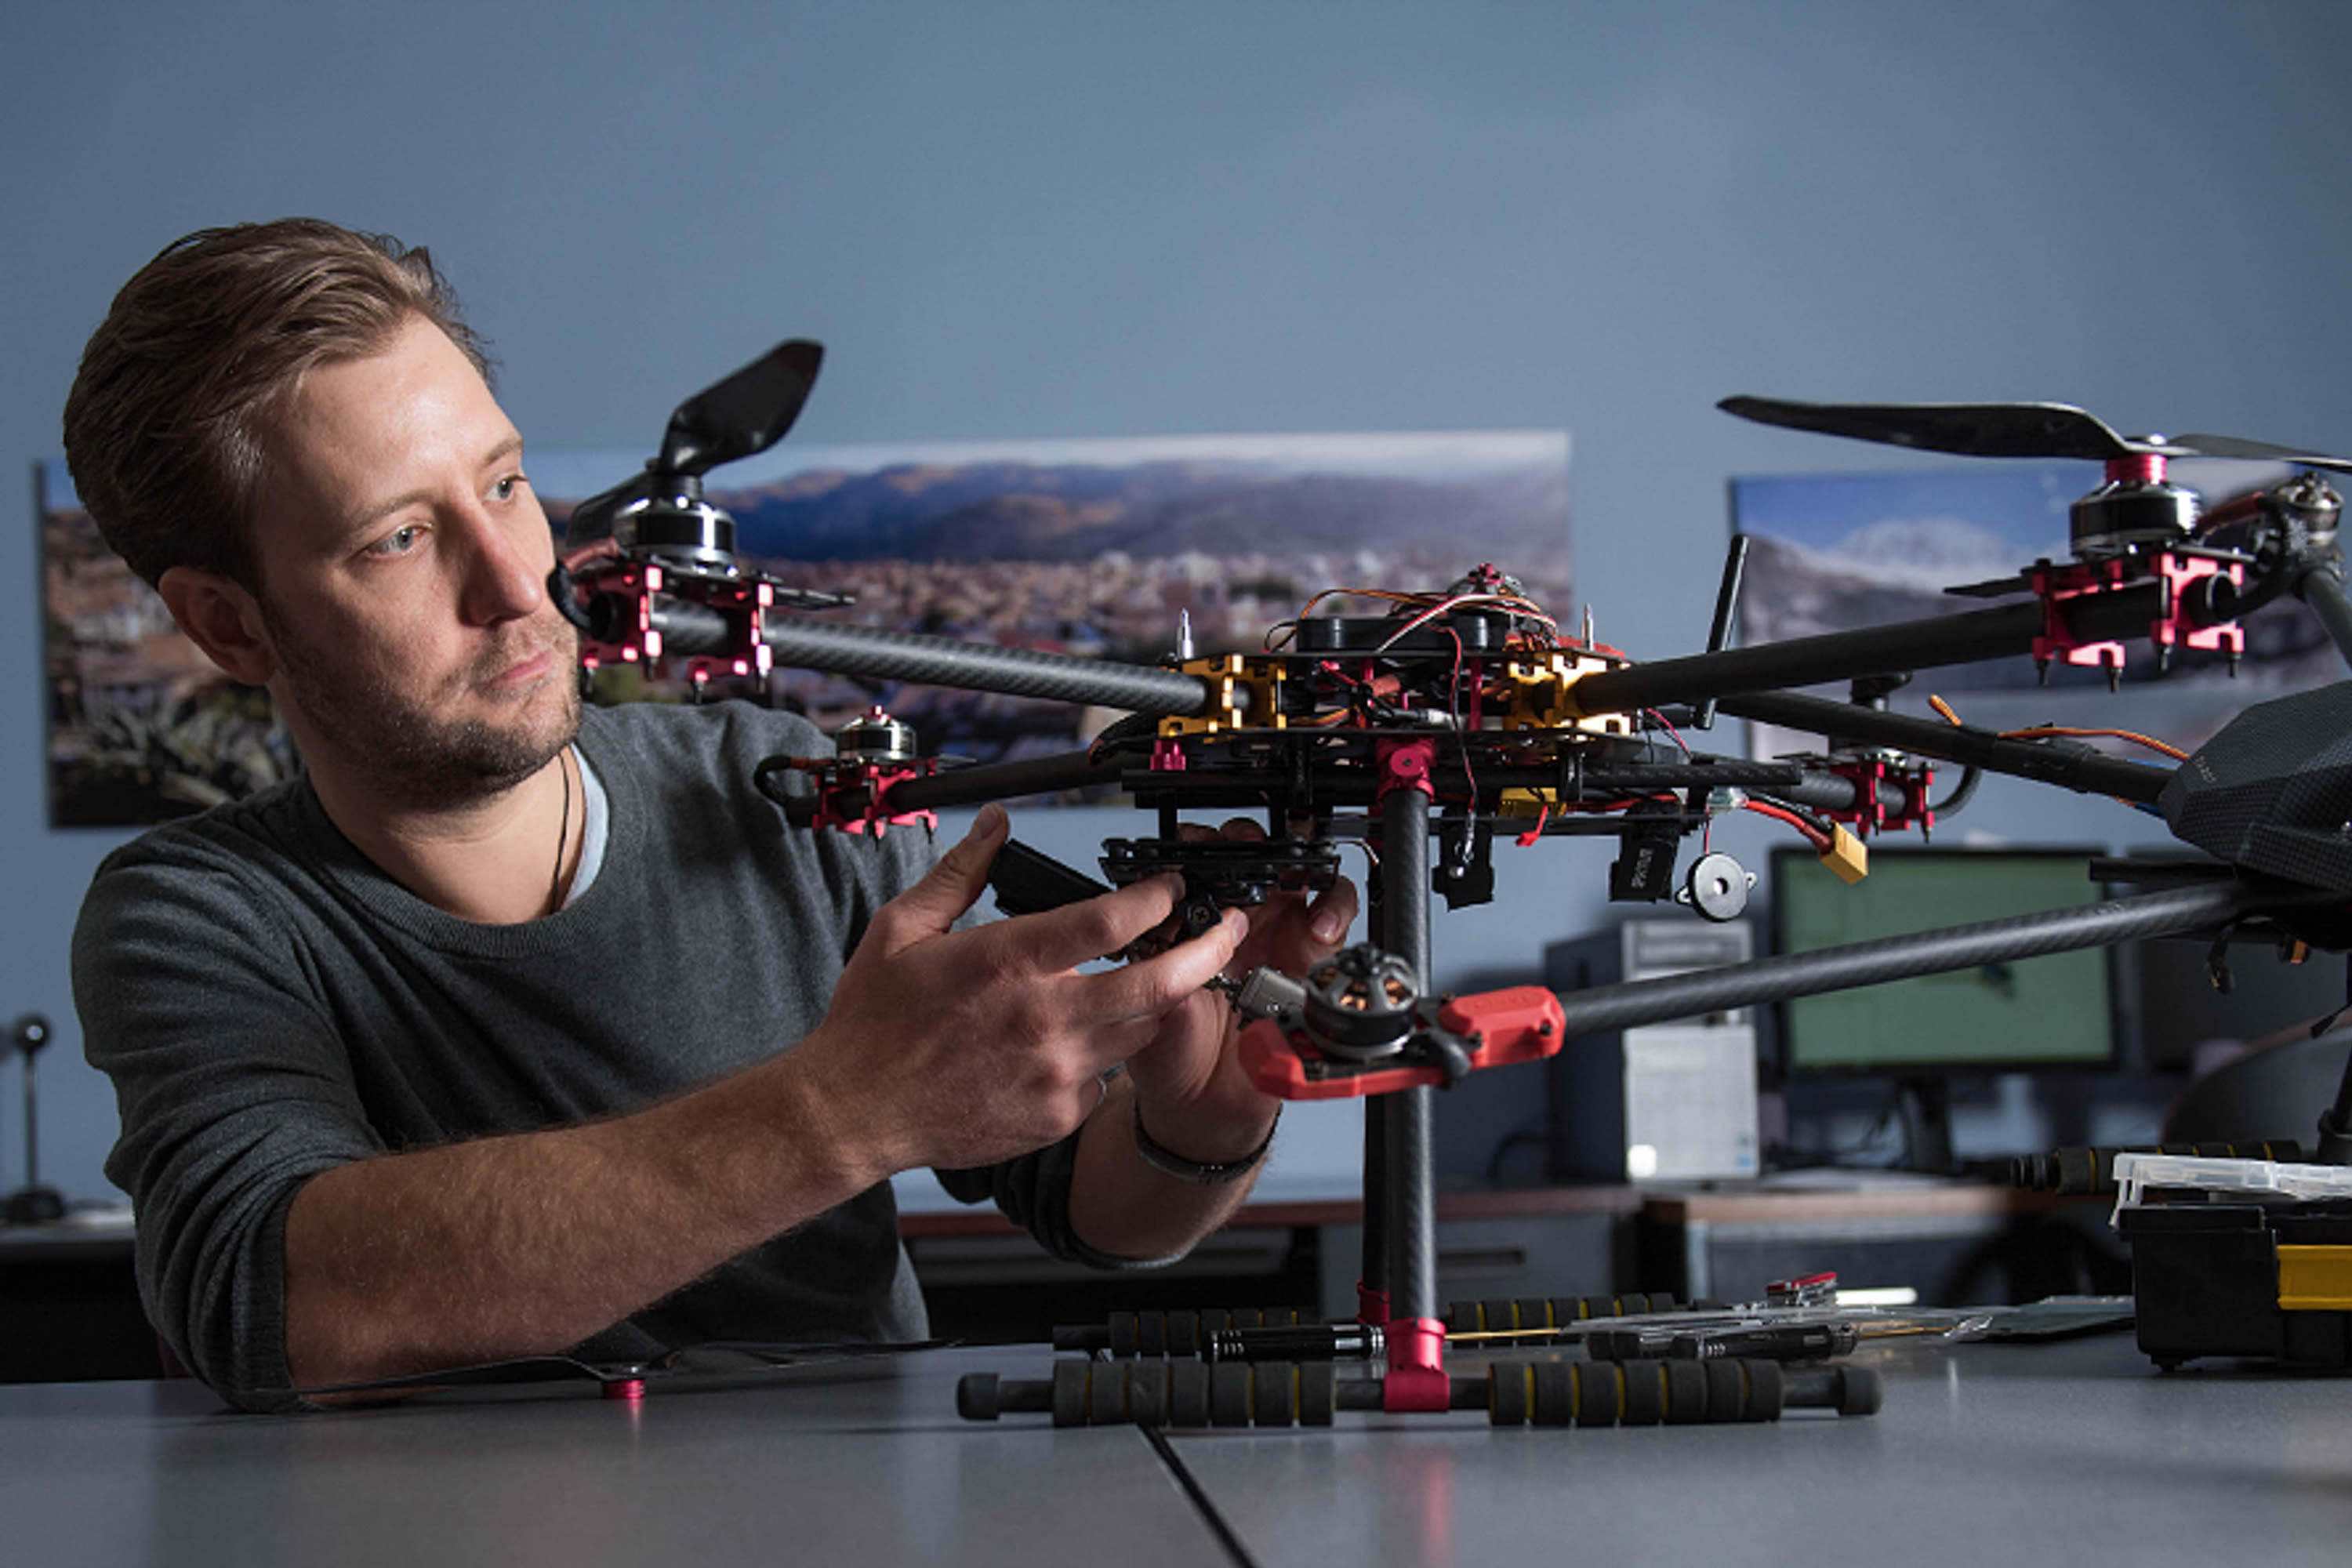 Graduate student with drone